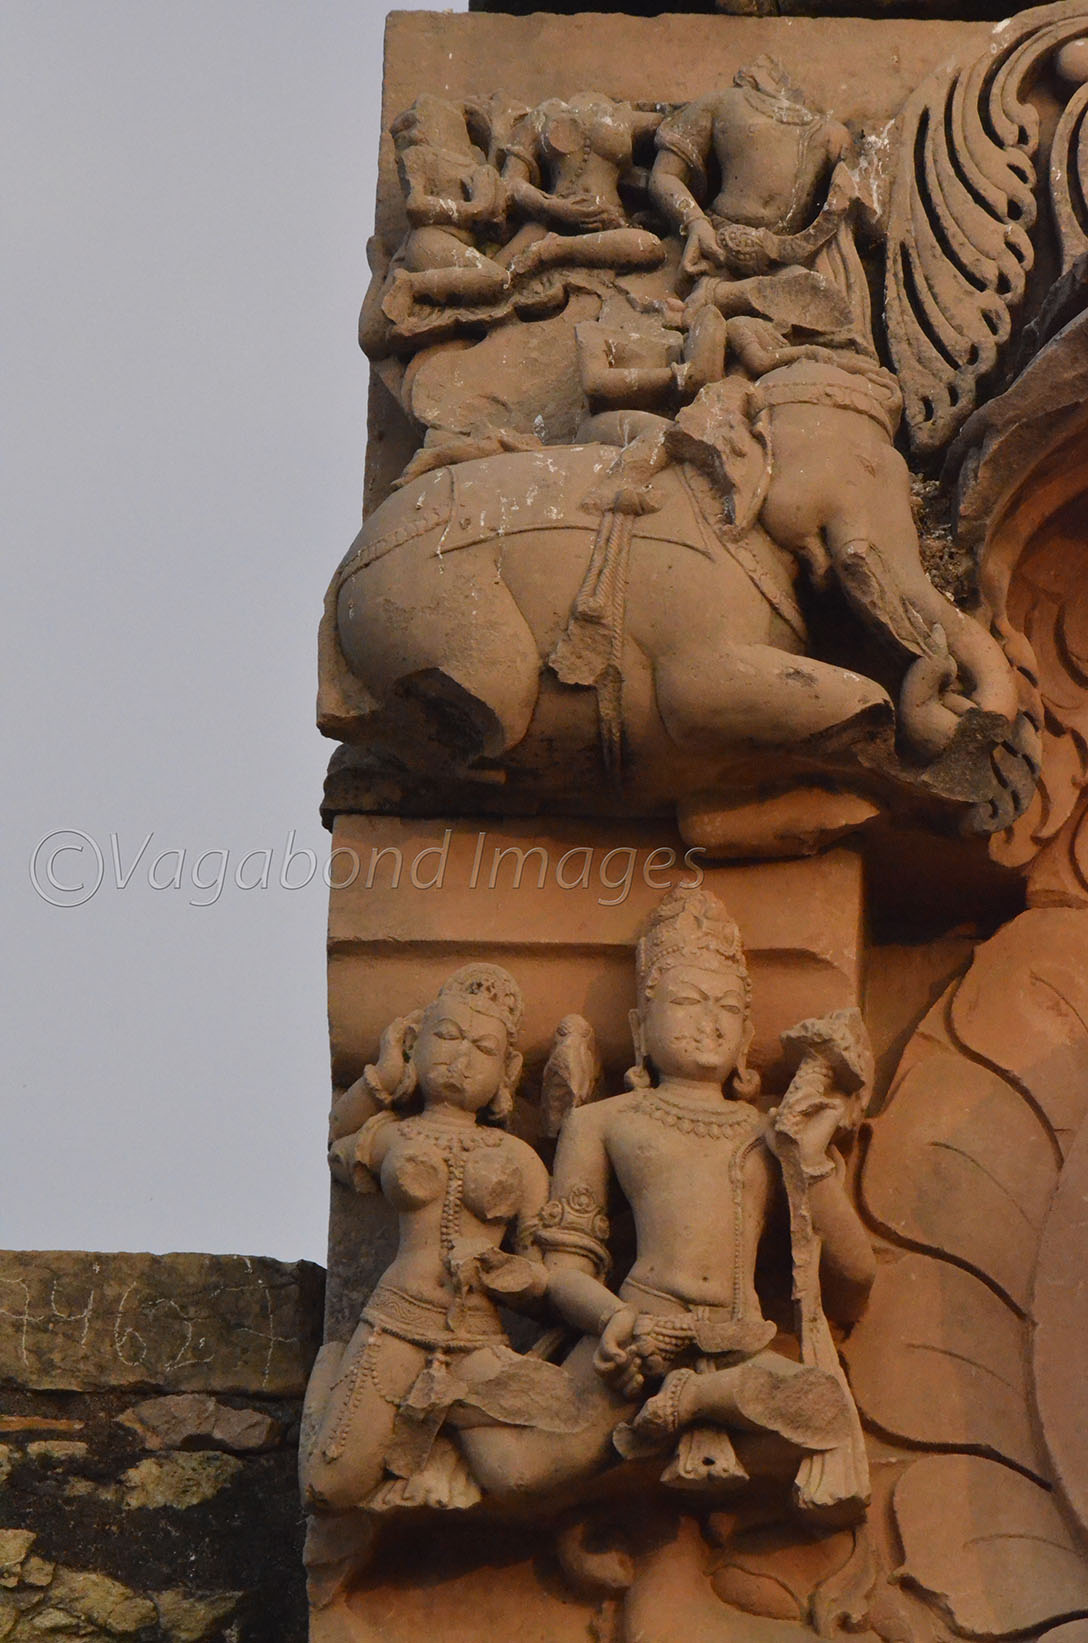 sculptures on left top panel of the statue